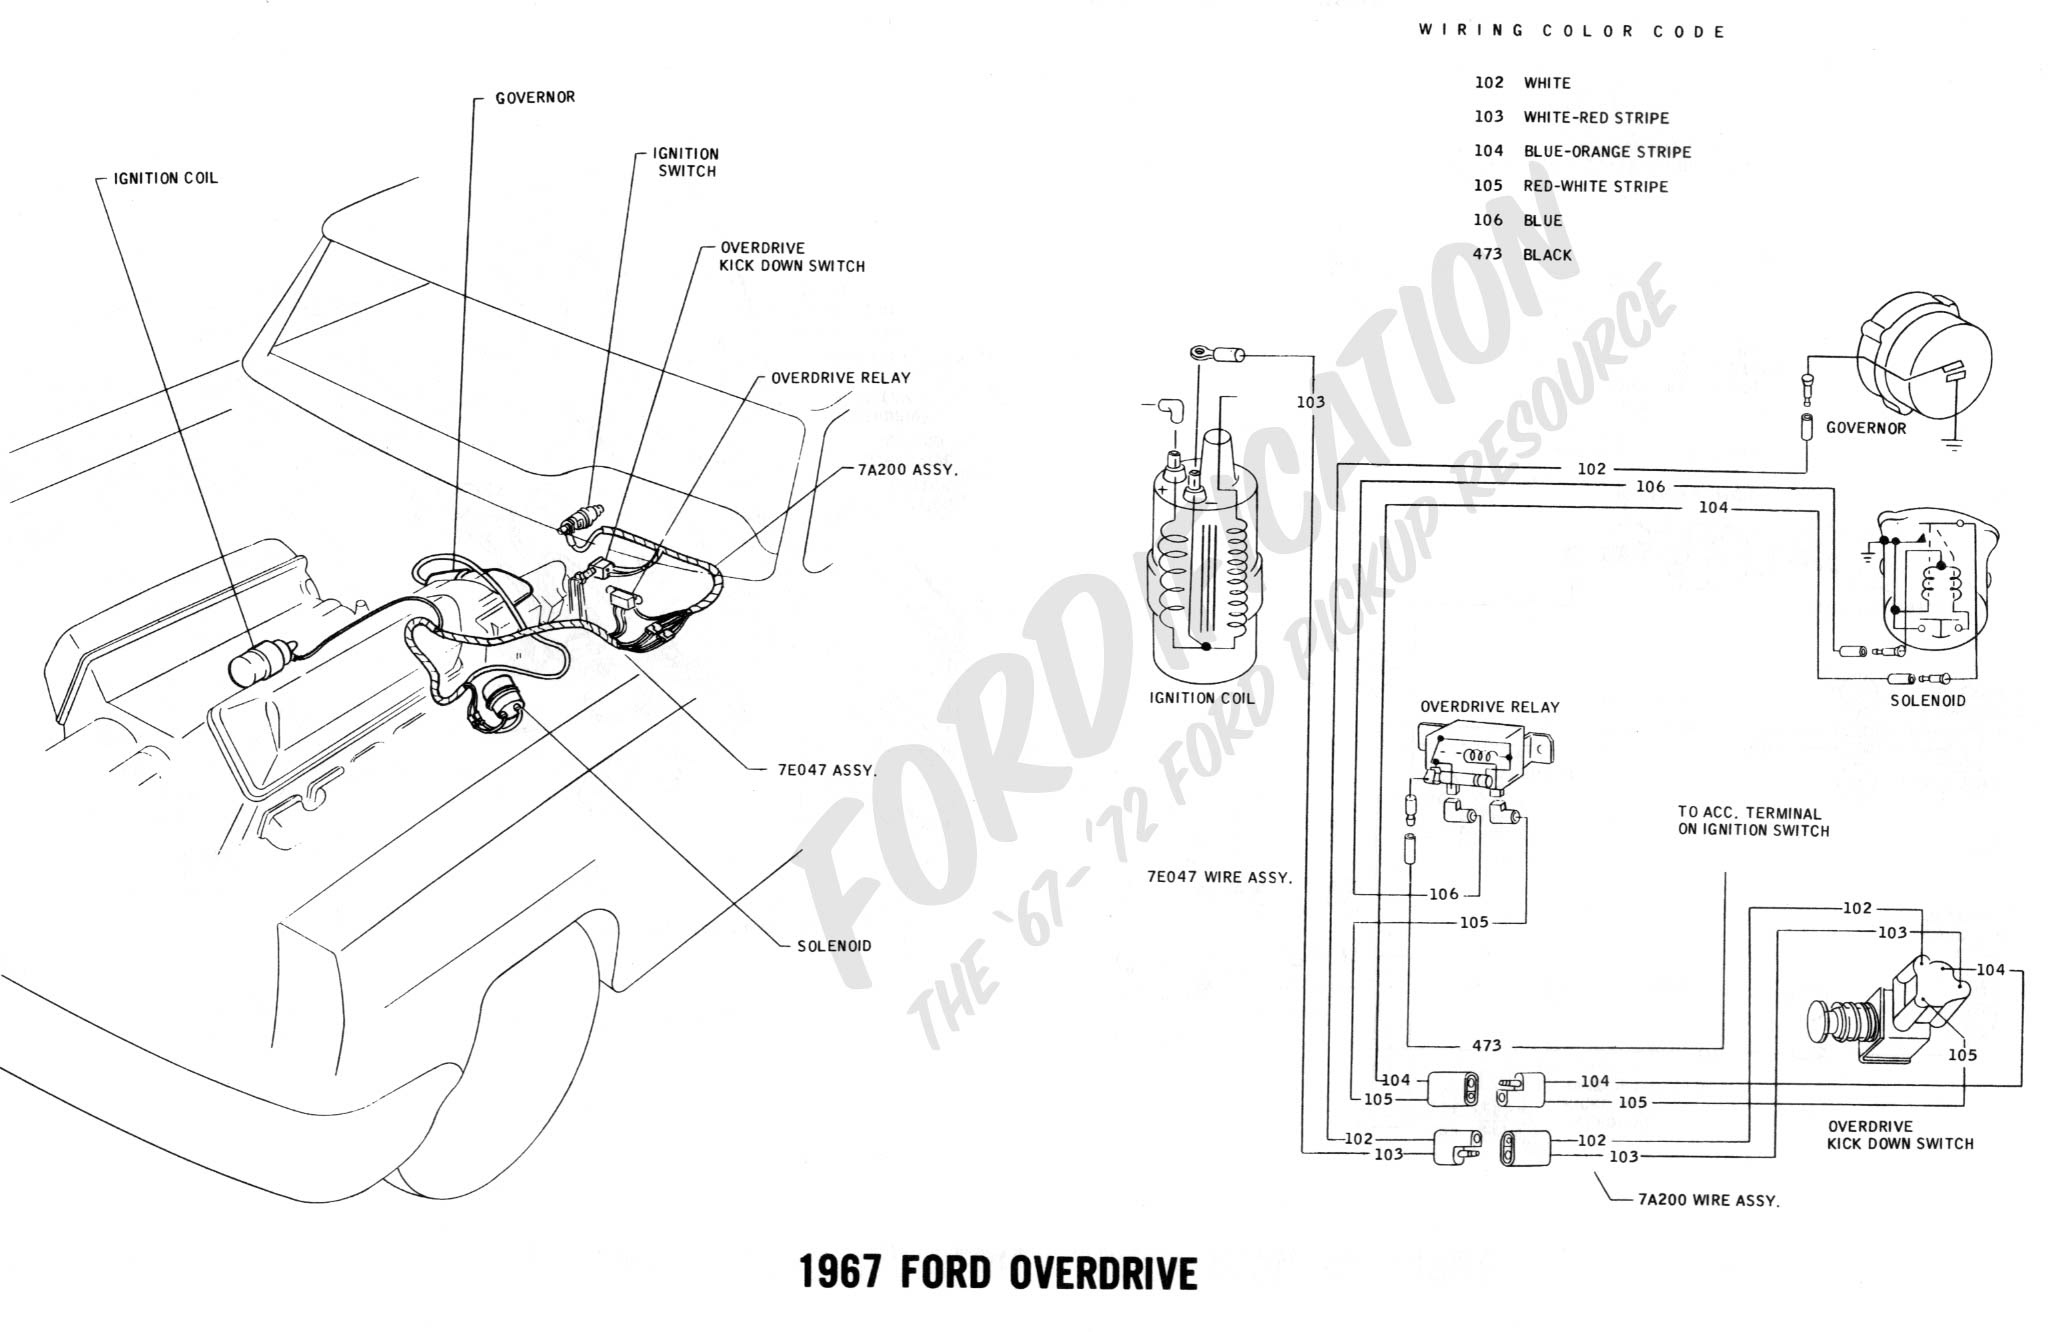 Diagram 1987 Ford L8000 Dump Truck Wiring Diagram Full Version Hd Quality Wiring Diagram Skematik110isi Gsdportotorres It